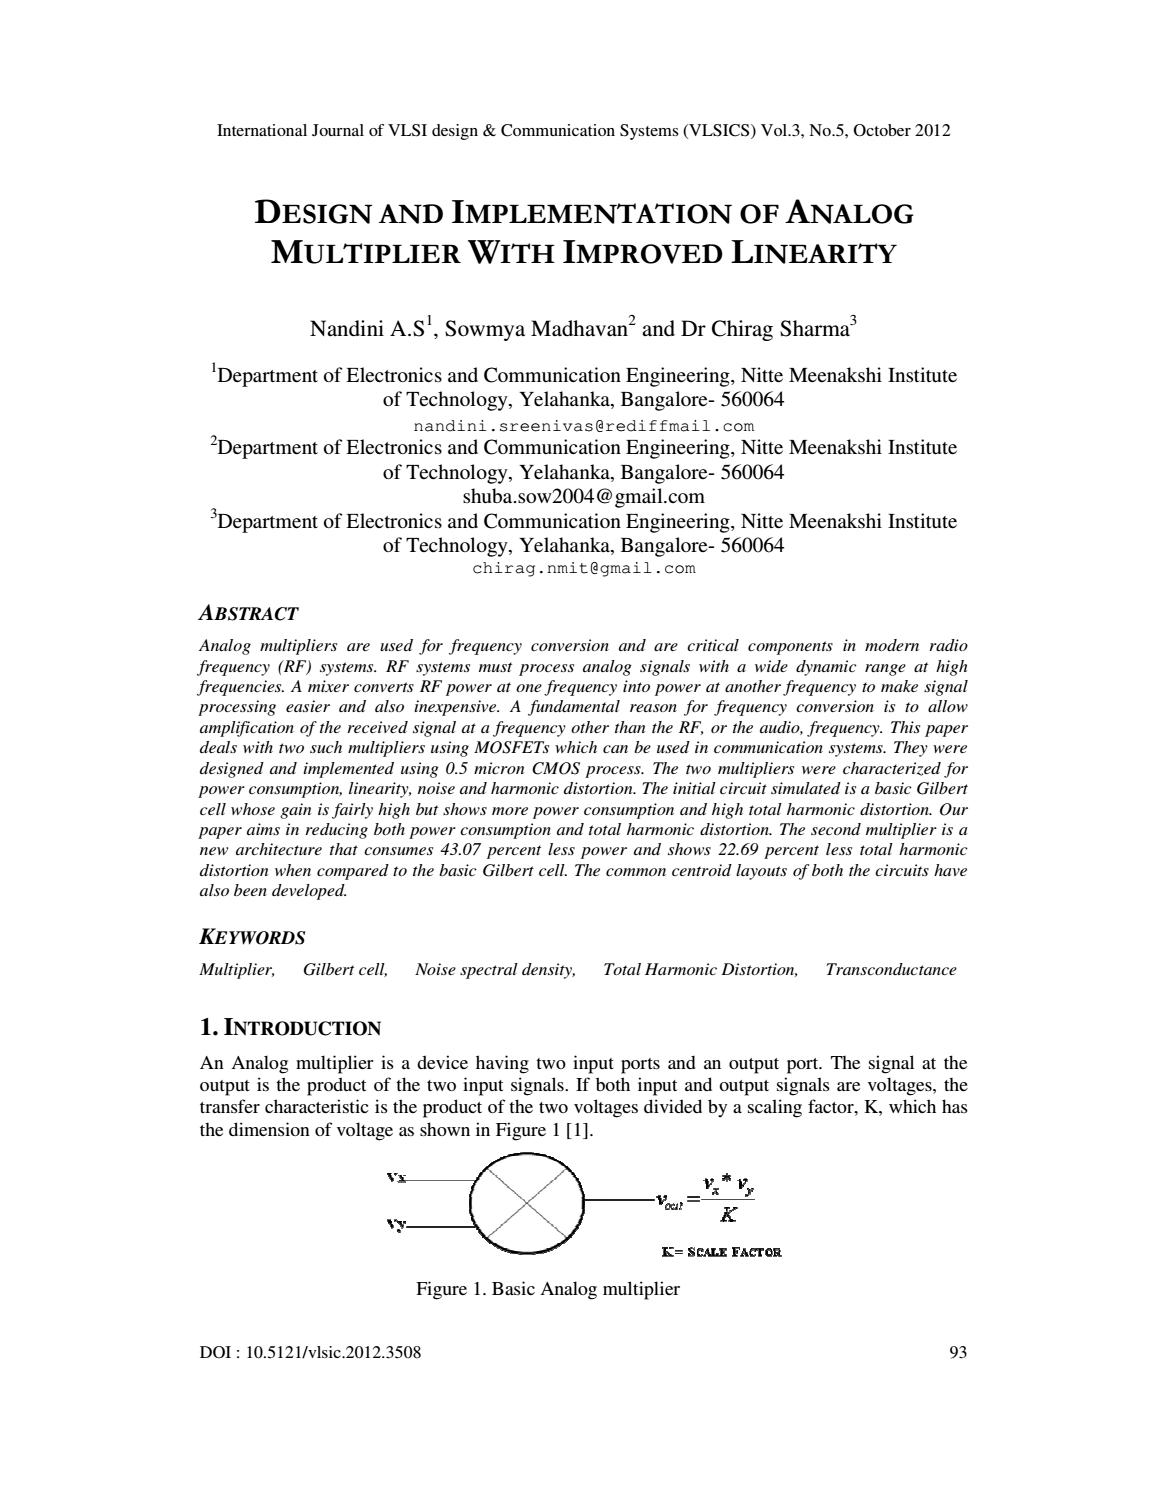 DESIGN AND IMPLEMENTATION OF ANALOG MULTIPLIER WITH IMPROVED